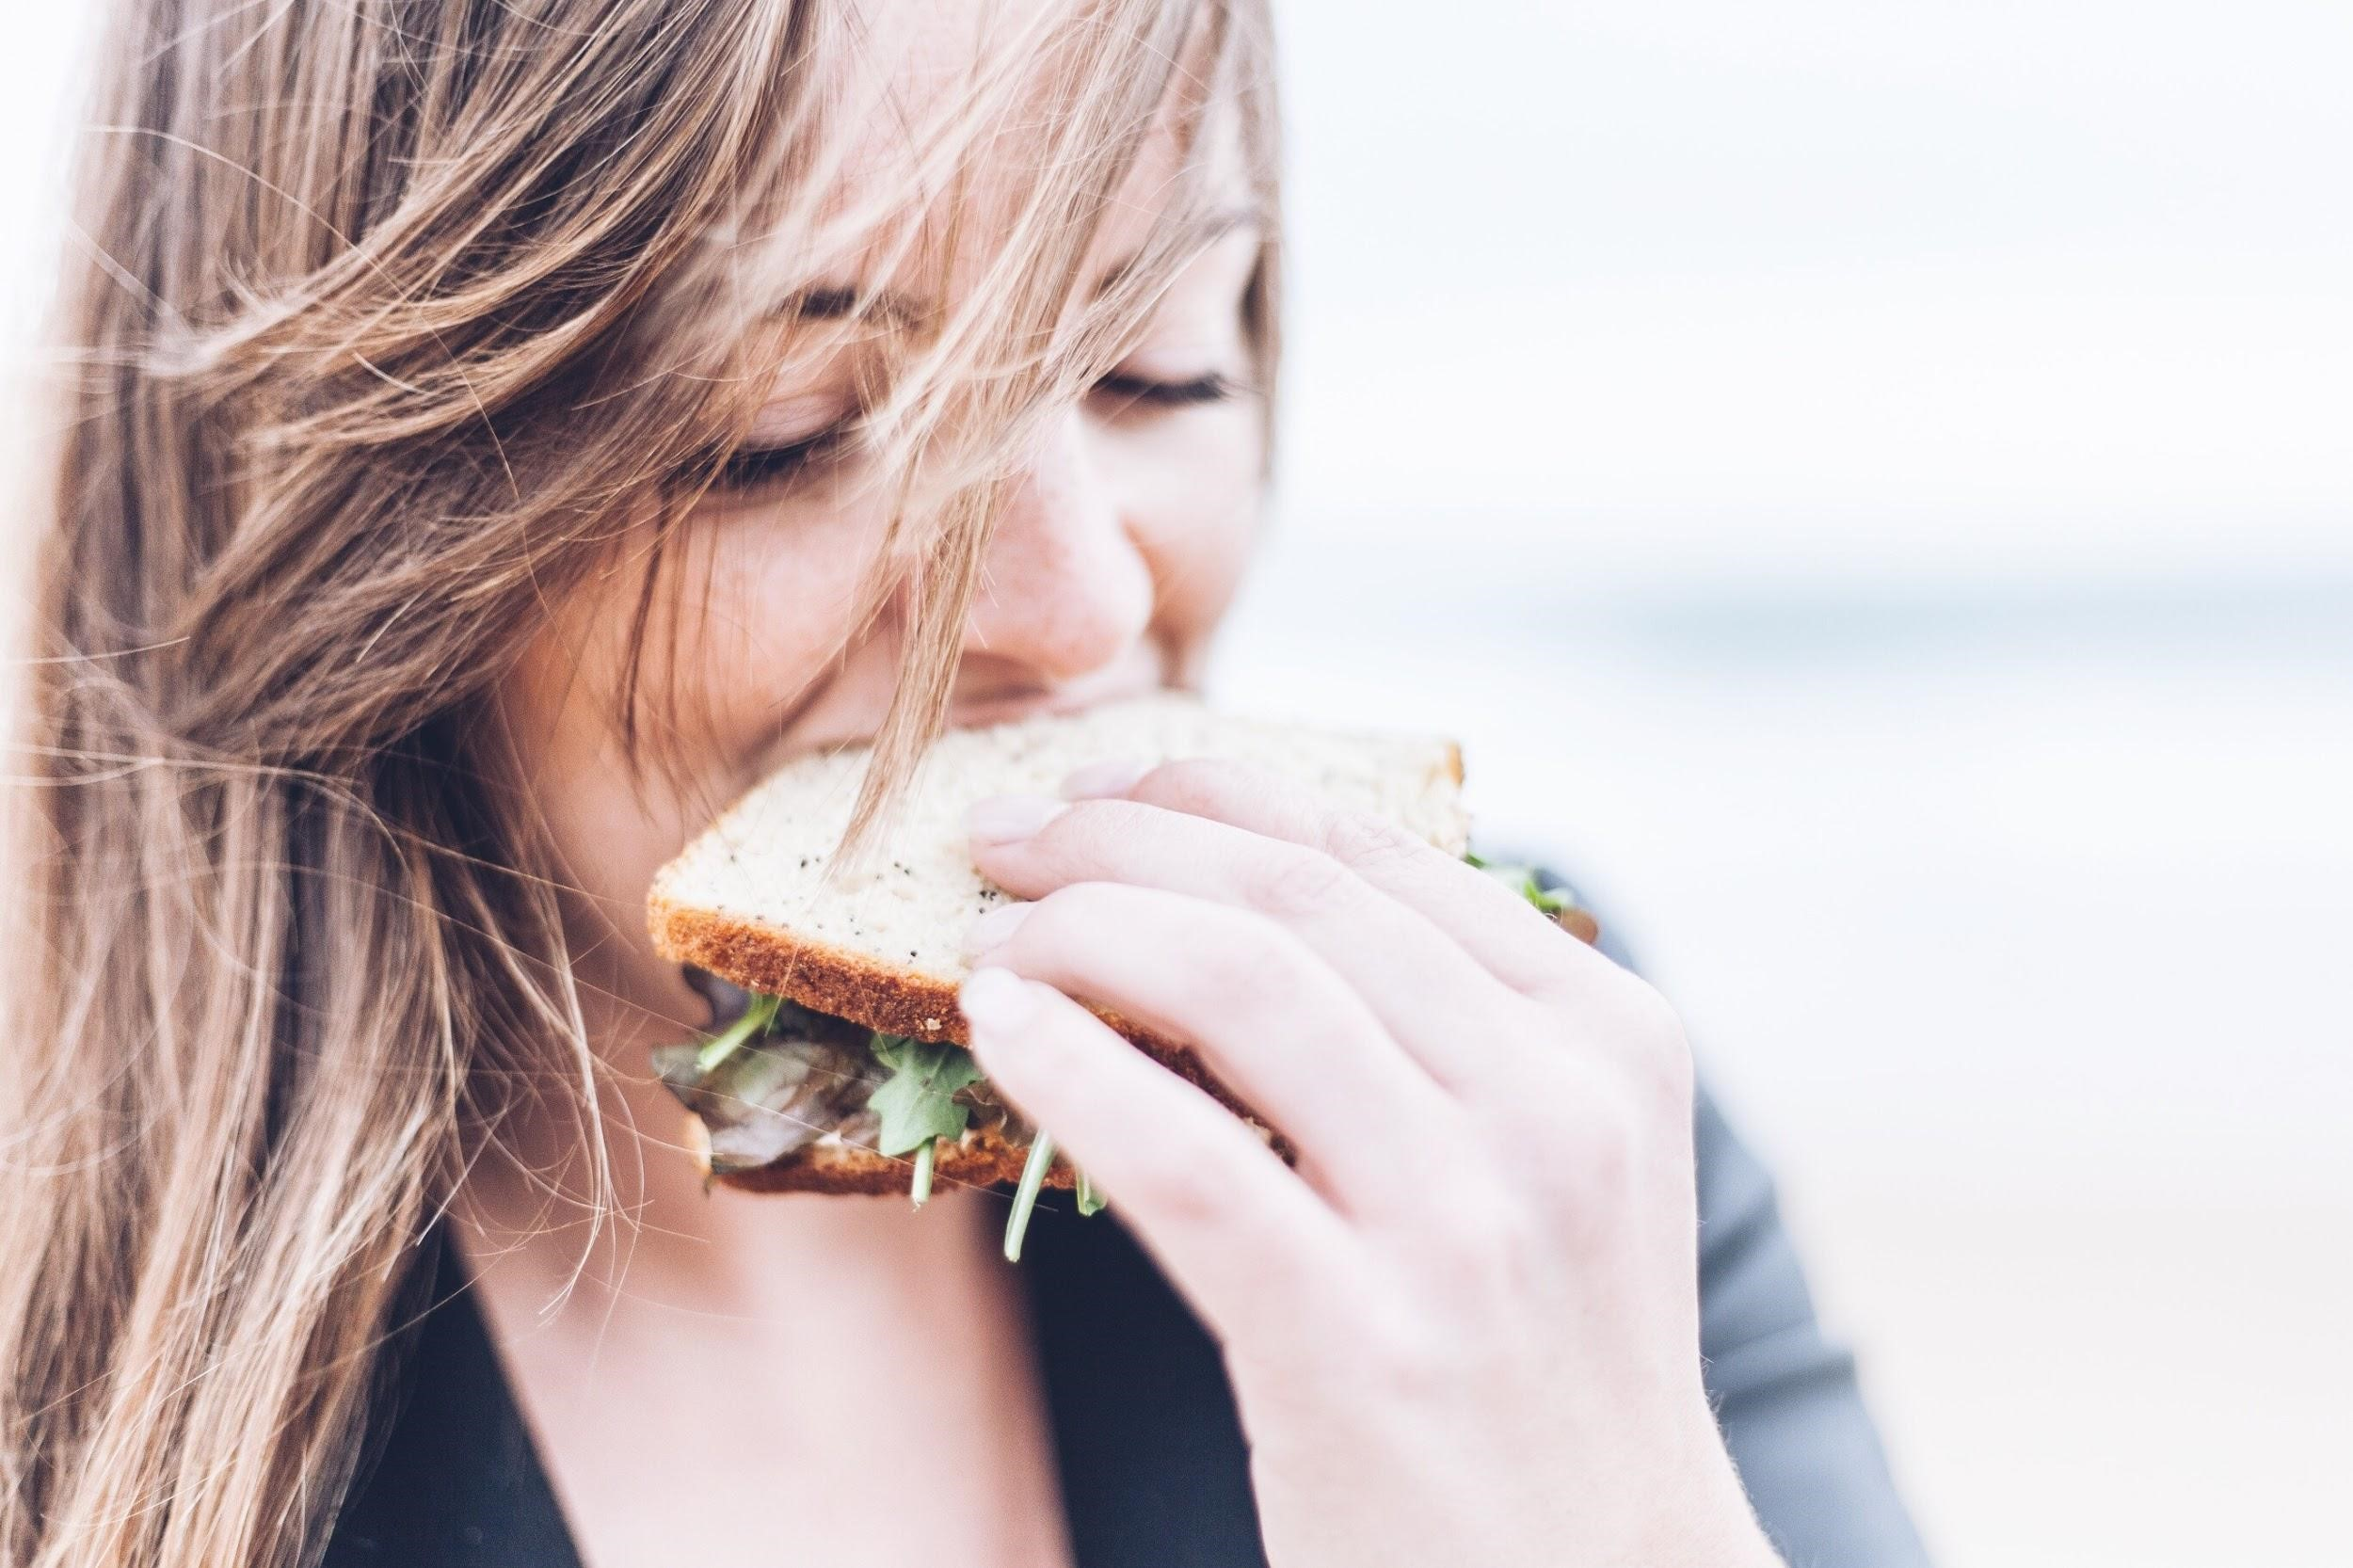 how to replace unhealthy cravings with something healthy